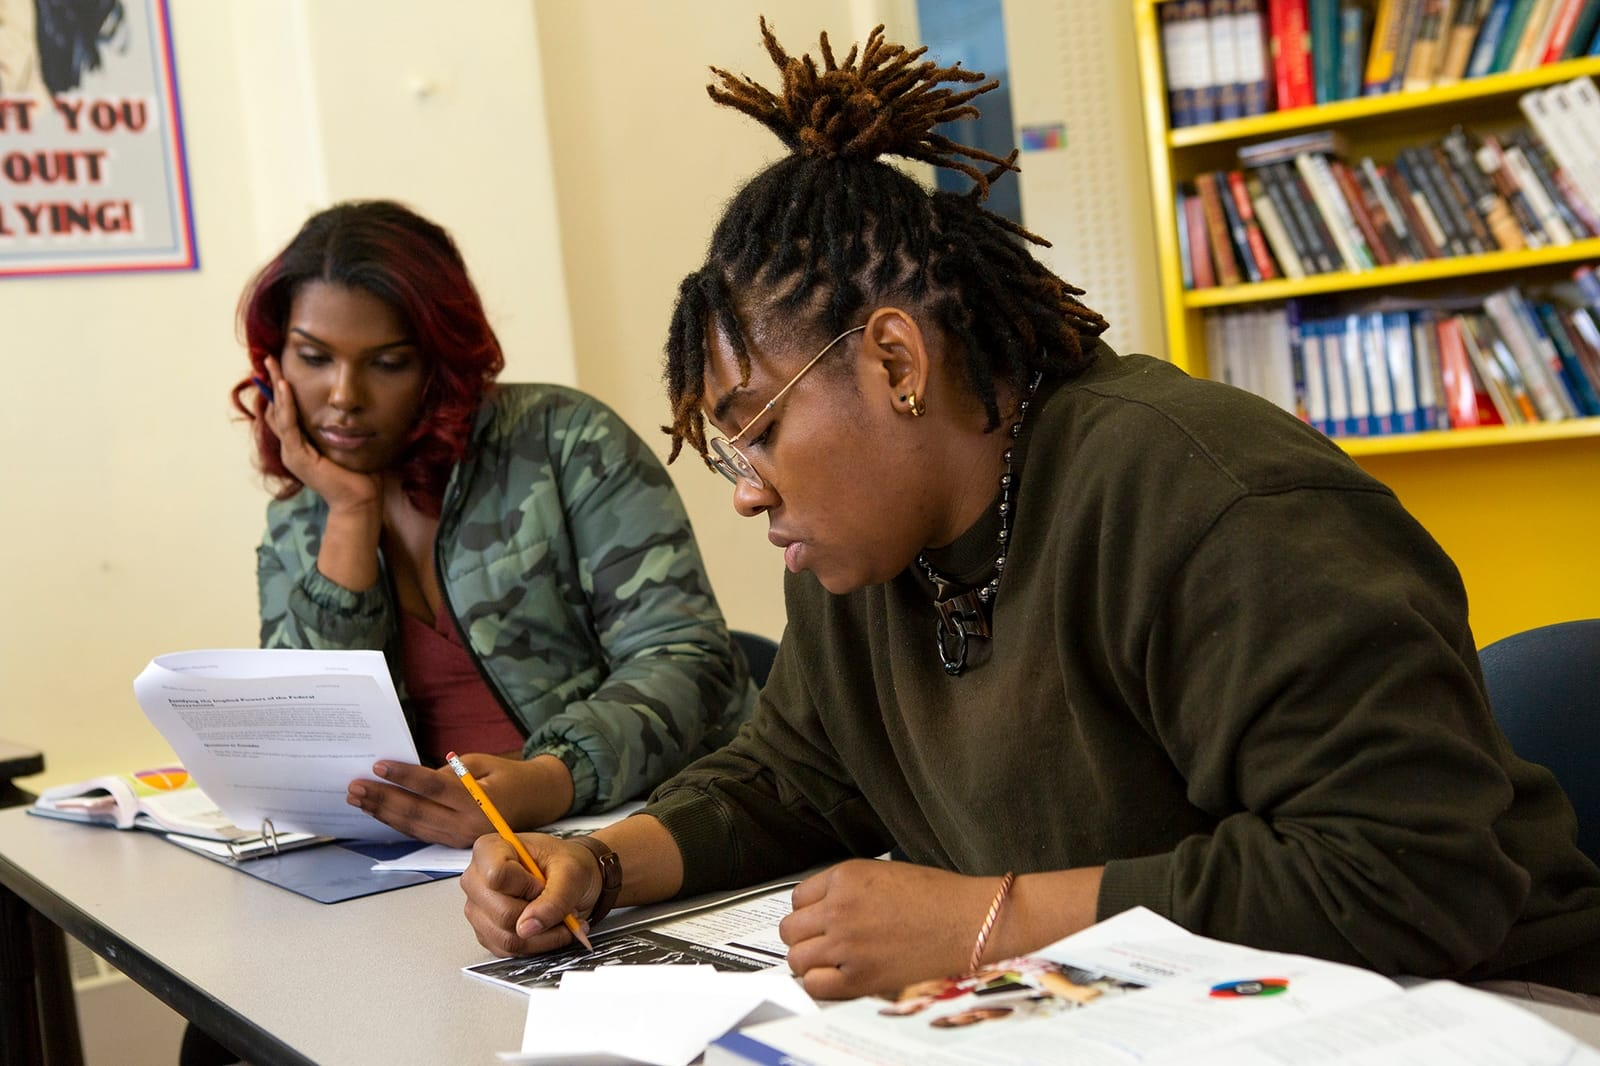 ID: a dark skinned, nonbinary person writes in a notebook while another dark skinned person, with shoulder length hair, with red tips reads a paper.